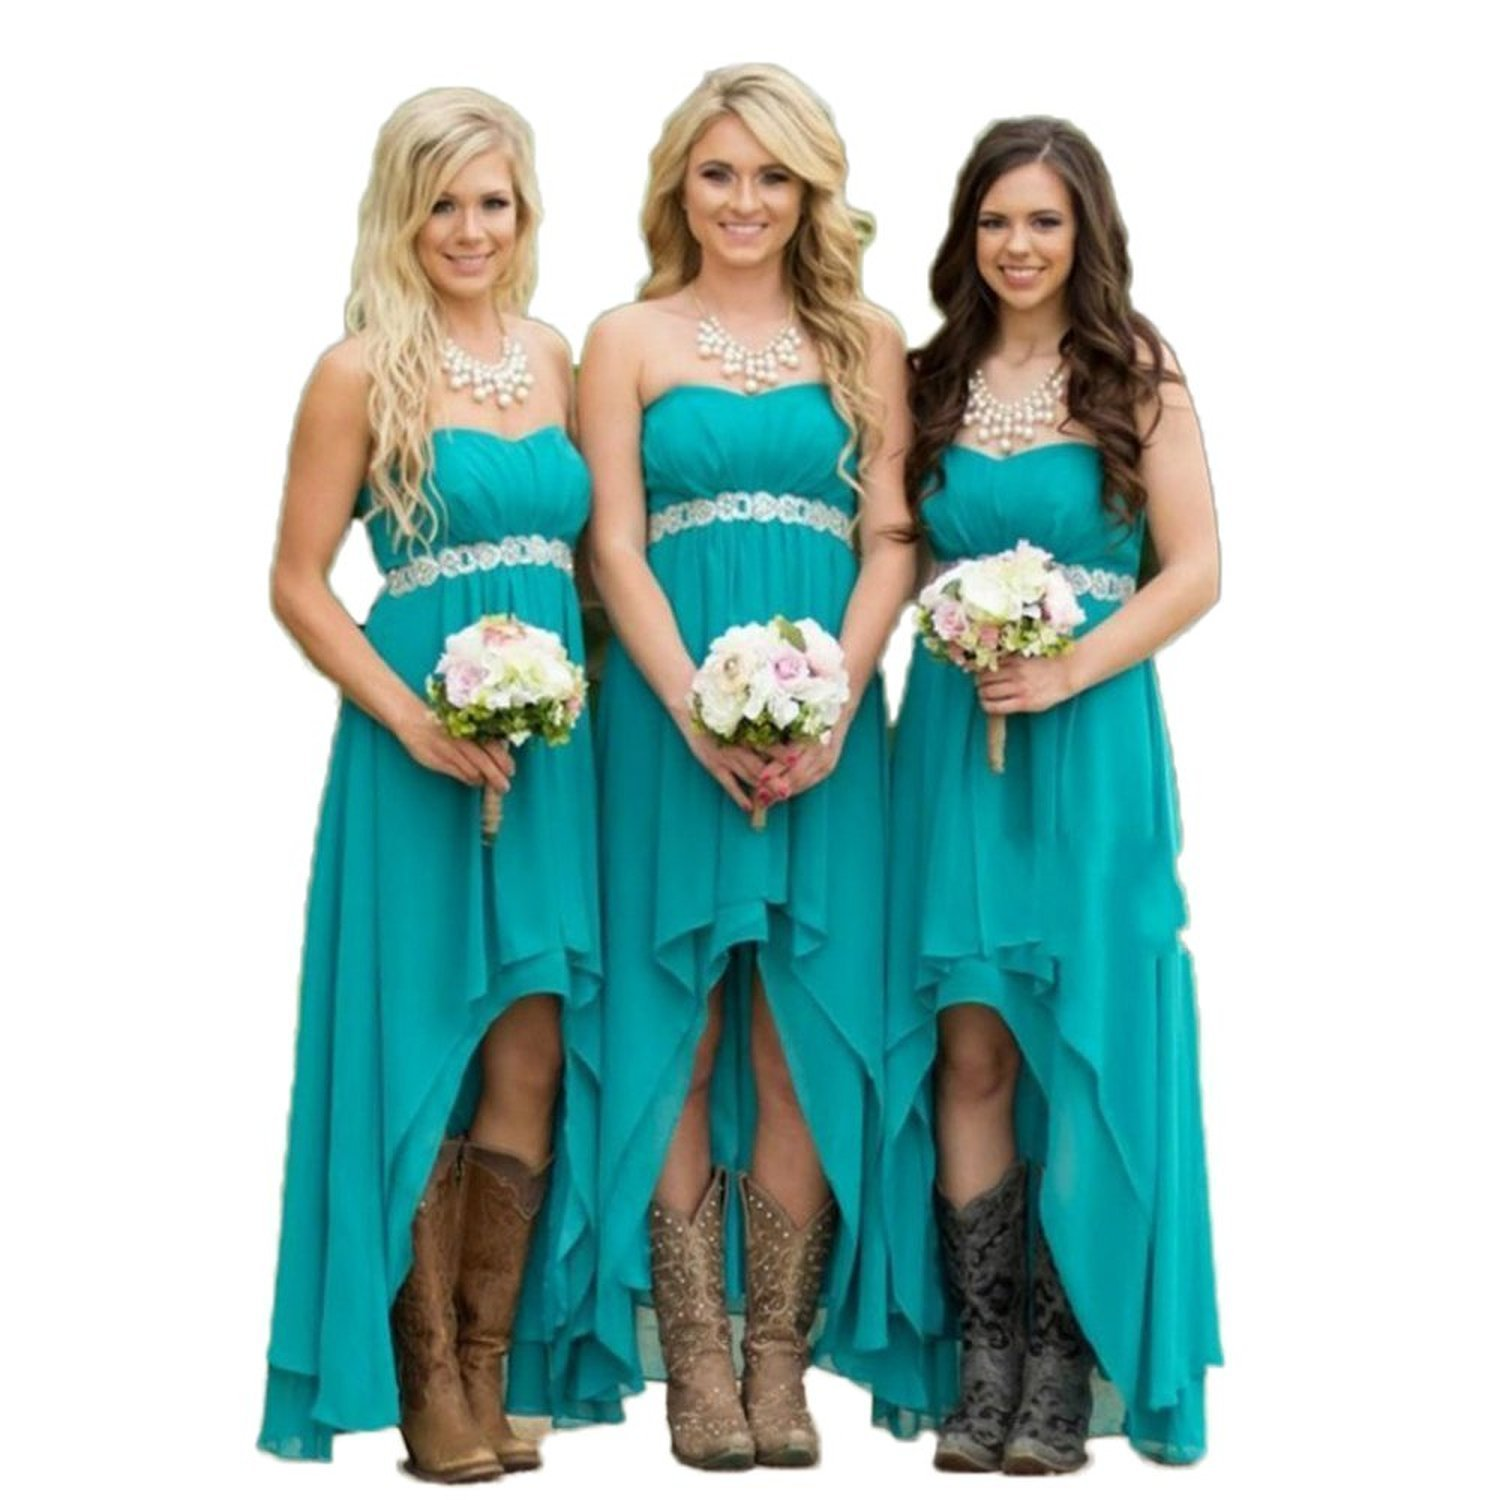 Amazon.com: Fanciest Women\' Strapless High Low Bridesmaid Dresses ...